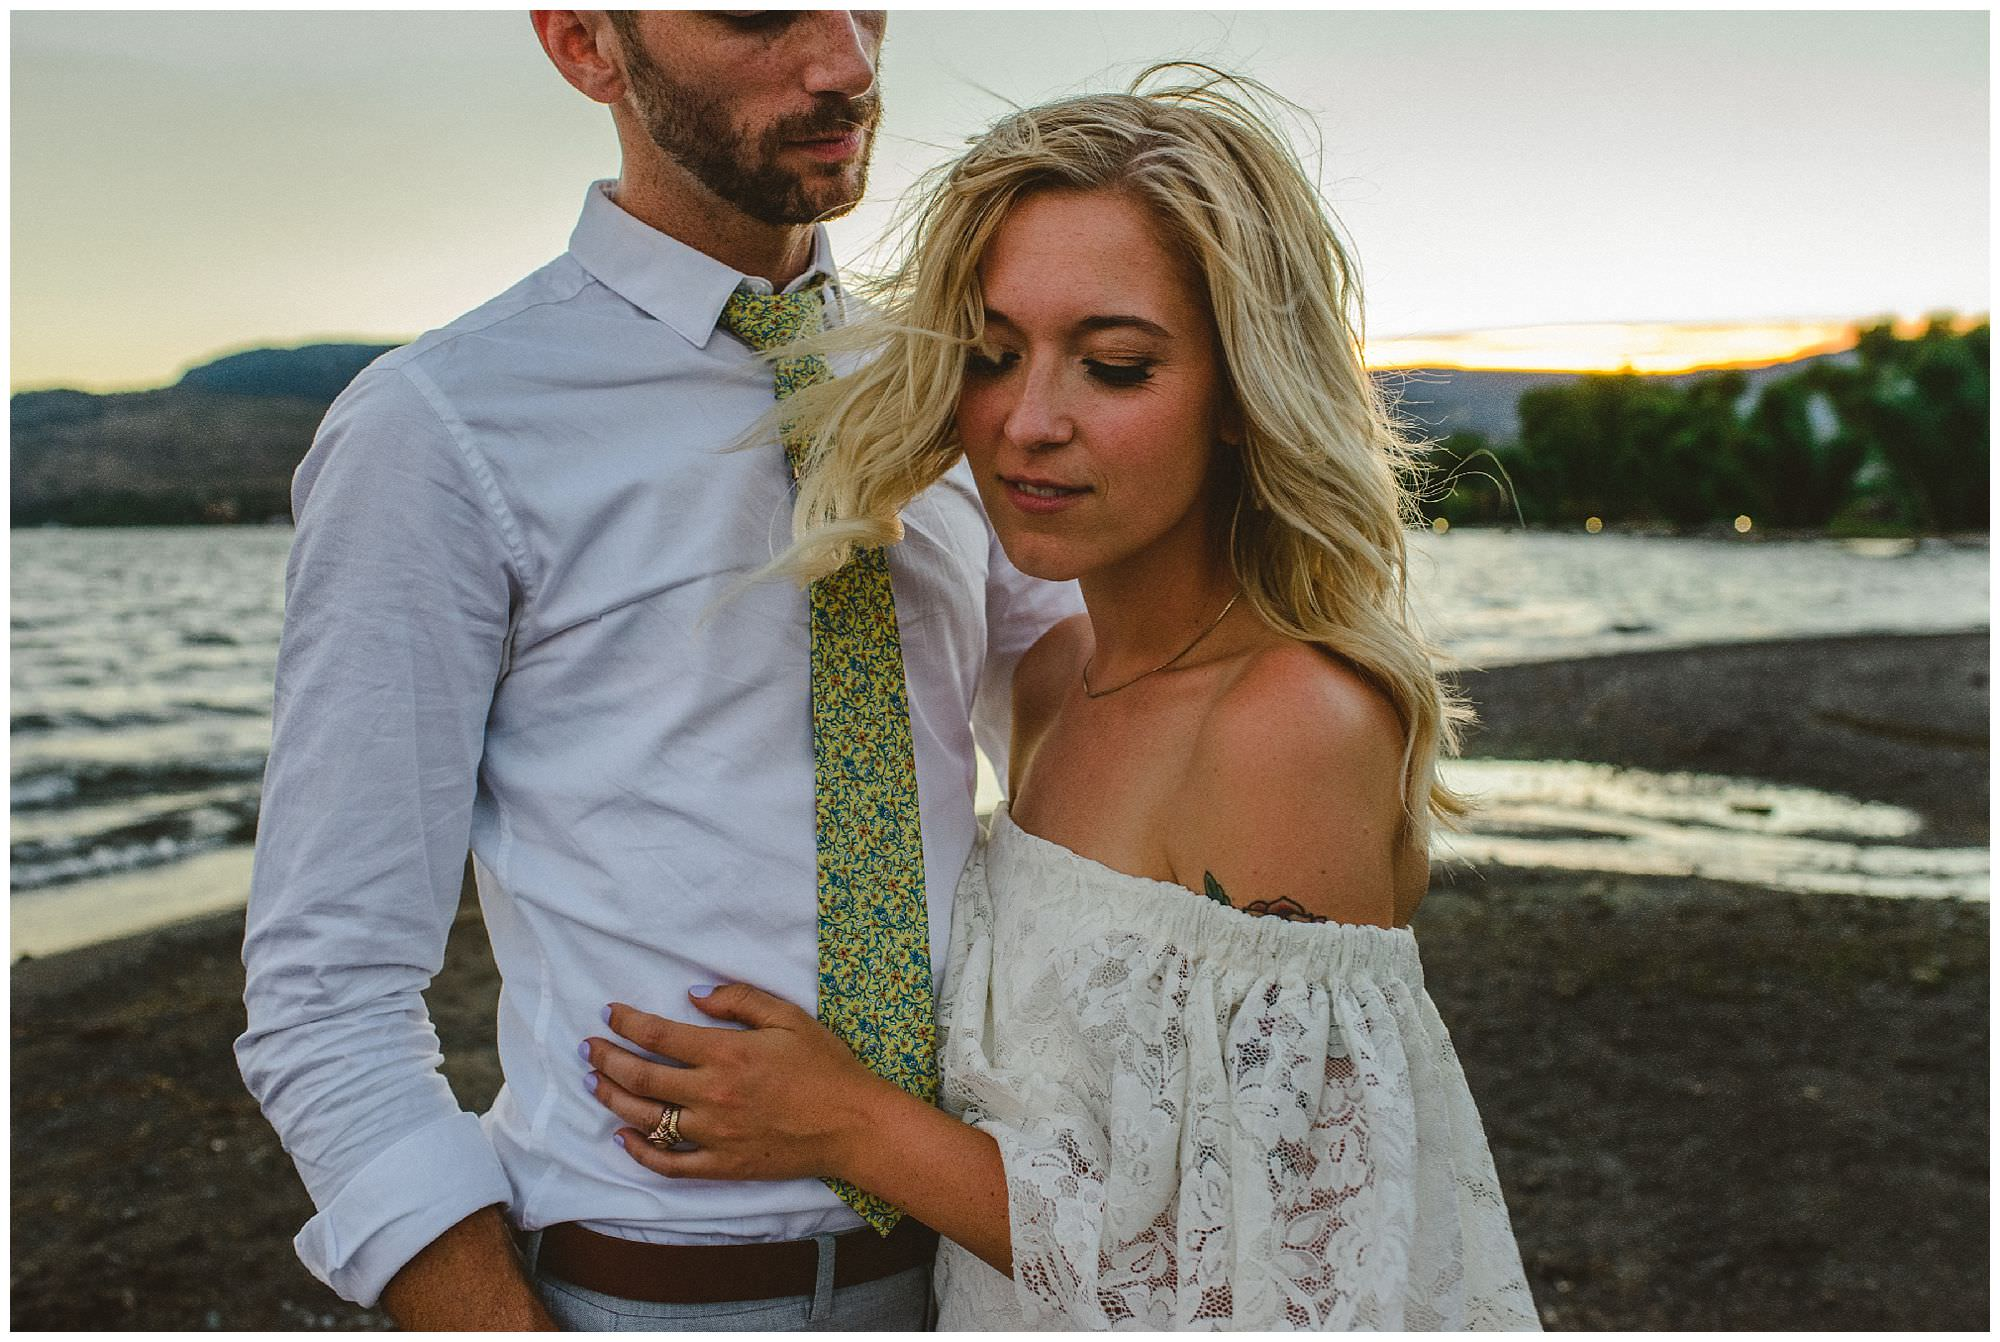 Candid moment with boho bride and groom at their sunset wedding in Kelowna BC